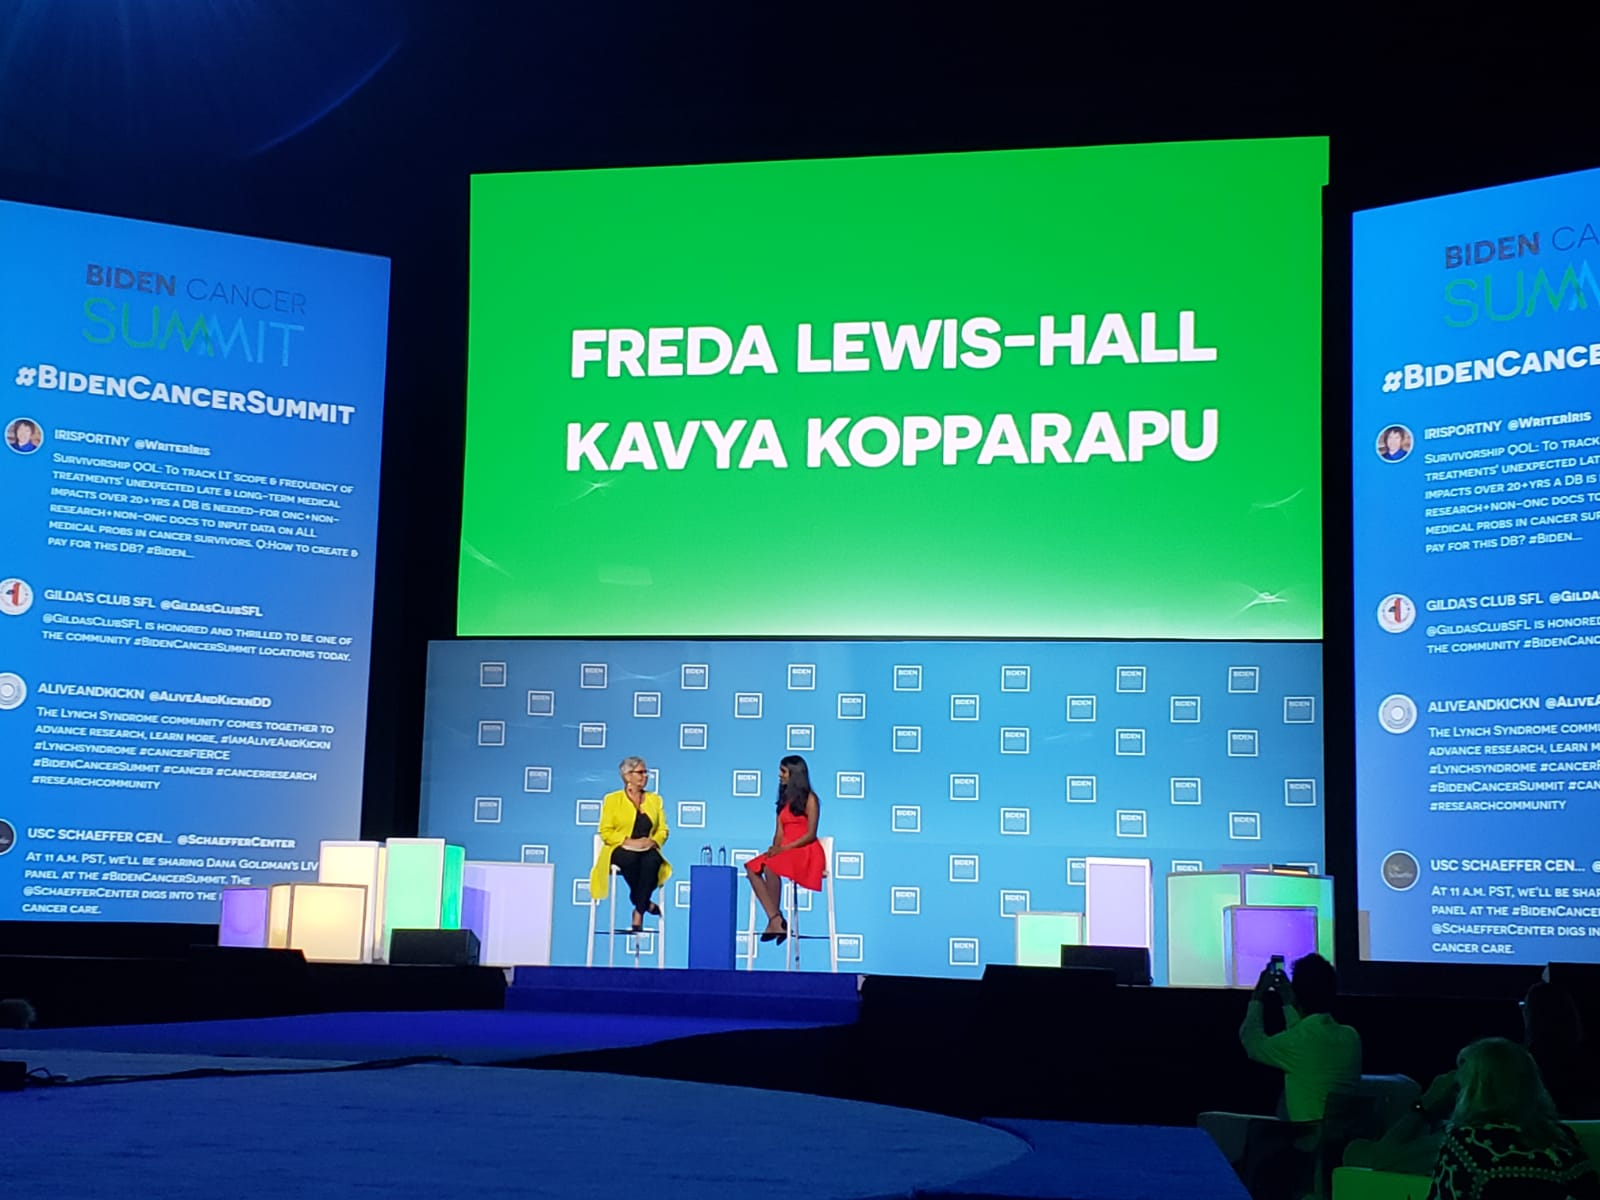 Fireside Chat at the Biden Cancer Summit with Pfizer CMO Dr. Freda Lewis-Hall